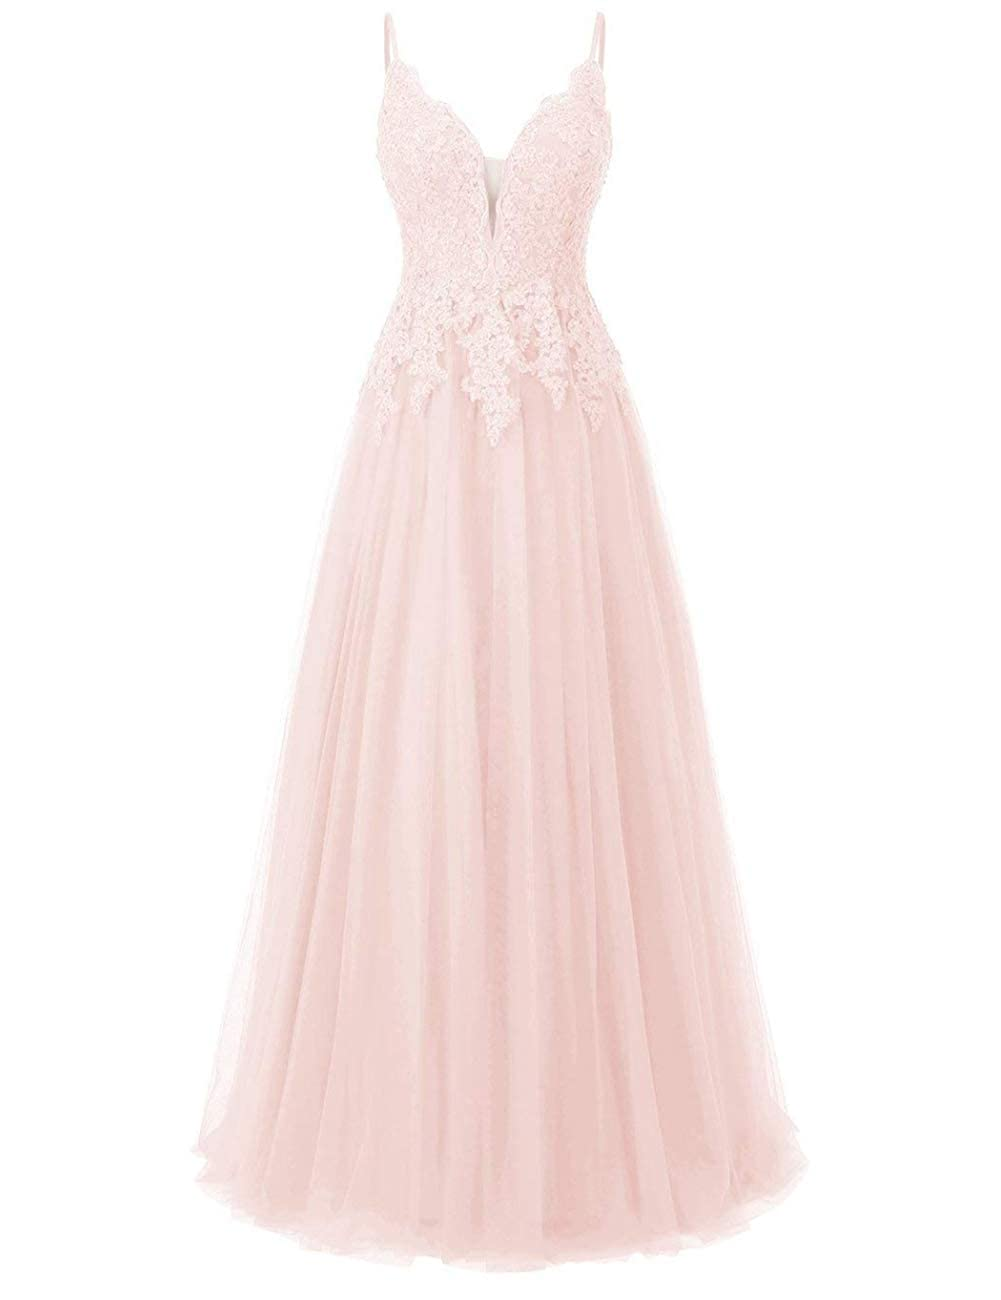 Pink Elegant Long Bridesmaid Dresses with Lace Applique Beads Spaghetti Straps Tulle Prom Gowns